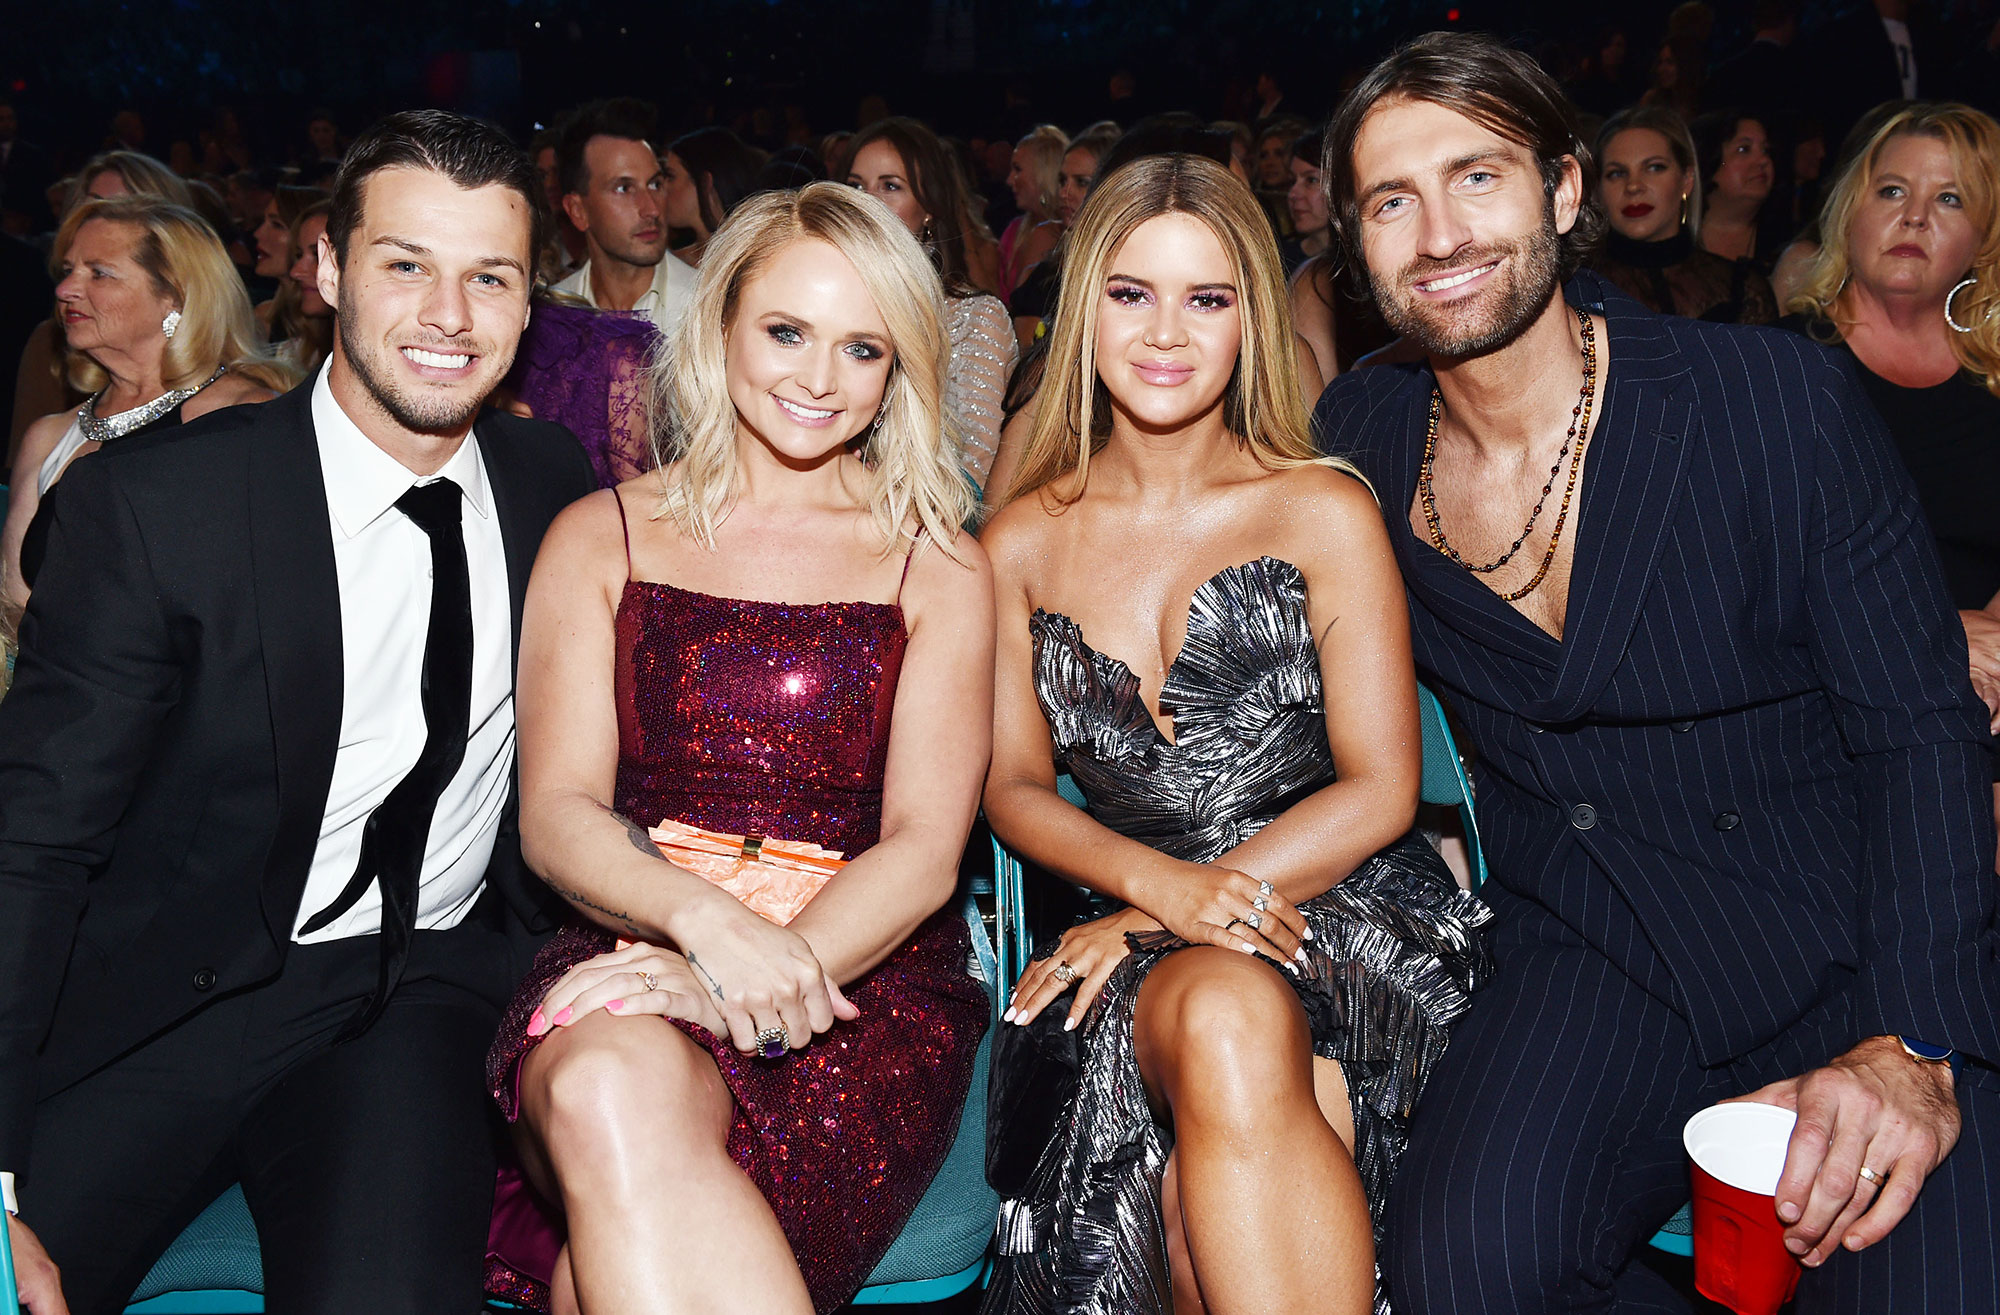 Inside ACM Awards 2019 Brendan McLoughlin Miranda Lambert Maren Morris Ryan Hurd - Lambert and McLoughlin spent time chatting with Maren Morris and Ryan Hurd .